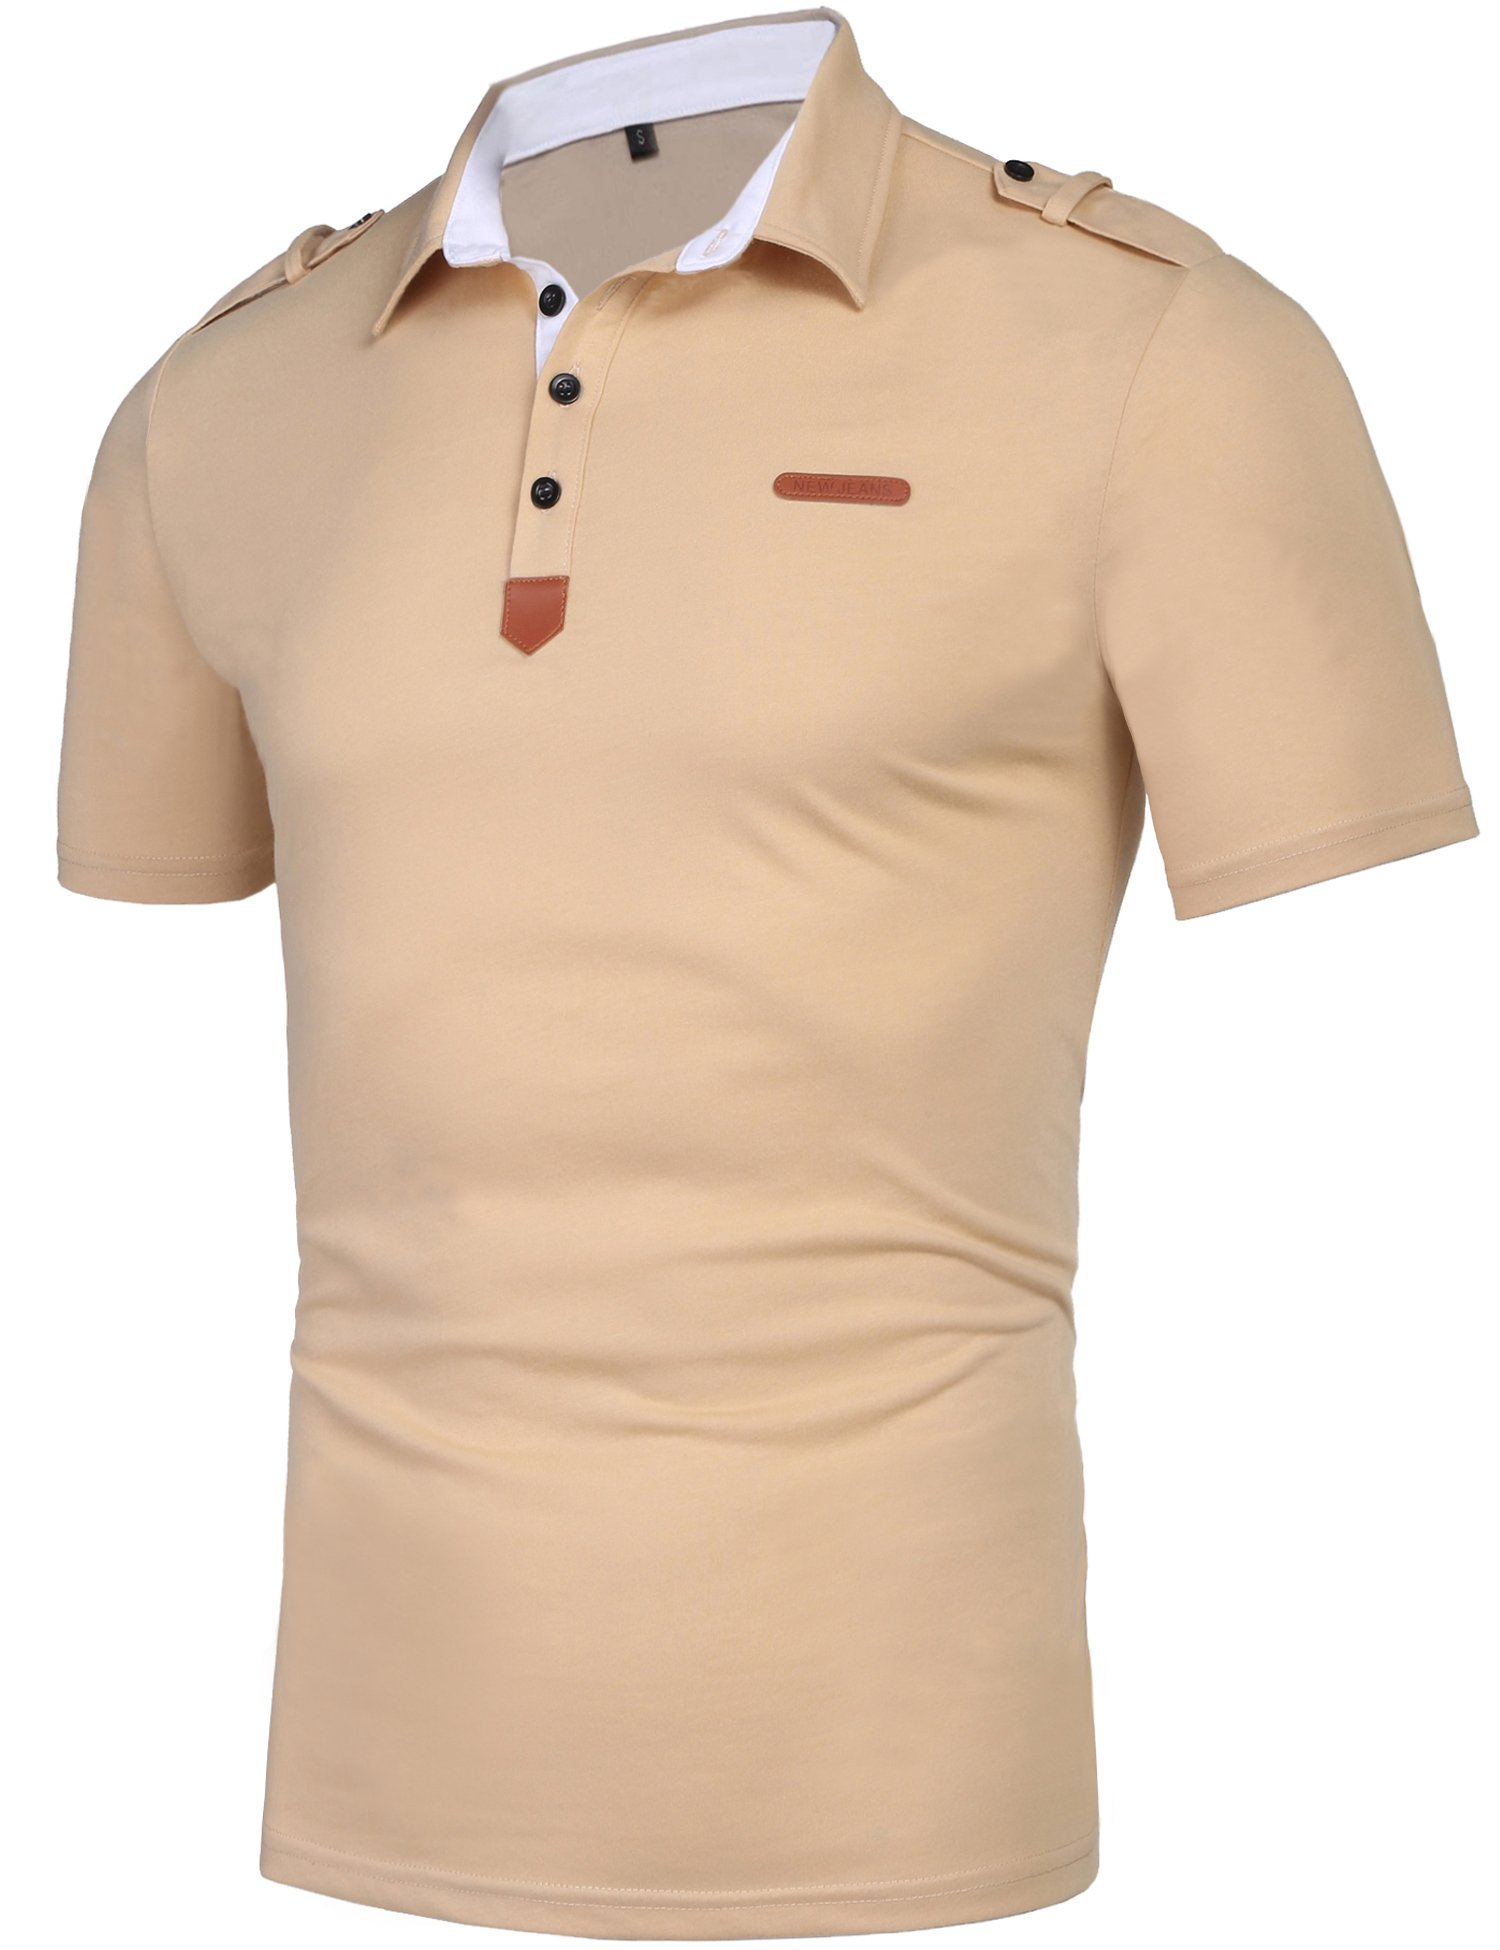 Daupanzees Men's Polo Shirts Classic Fit Four-Button Placket Straight Fit Contrast Leather Solid Short Sleeve Pique Polo Shirt (Beige XL)